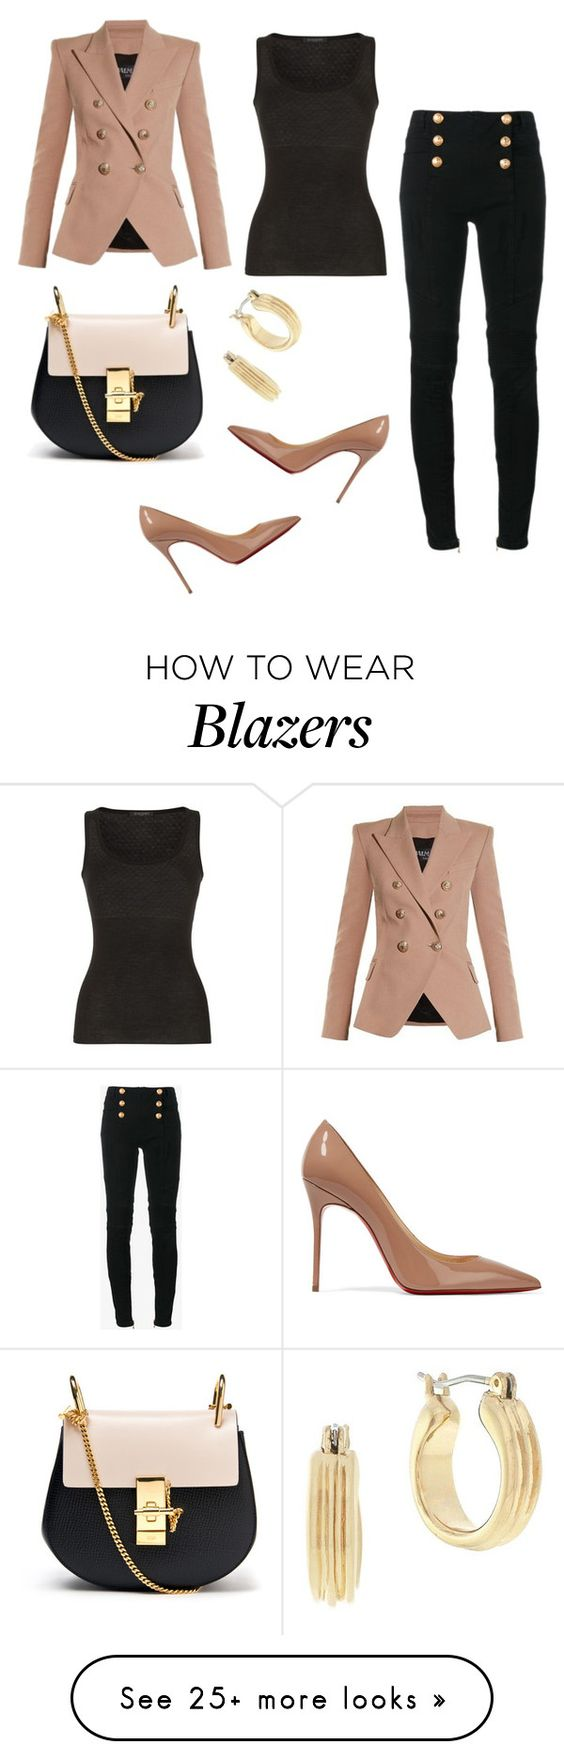 """Untitled #919"" by crazybookladysuzejn on Polyvore featuring Balmain, Chloé, BCBGeneration and Christian Louboutin"